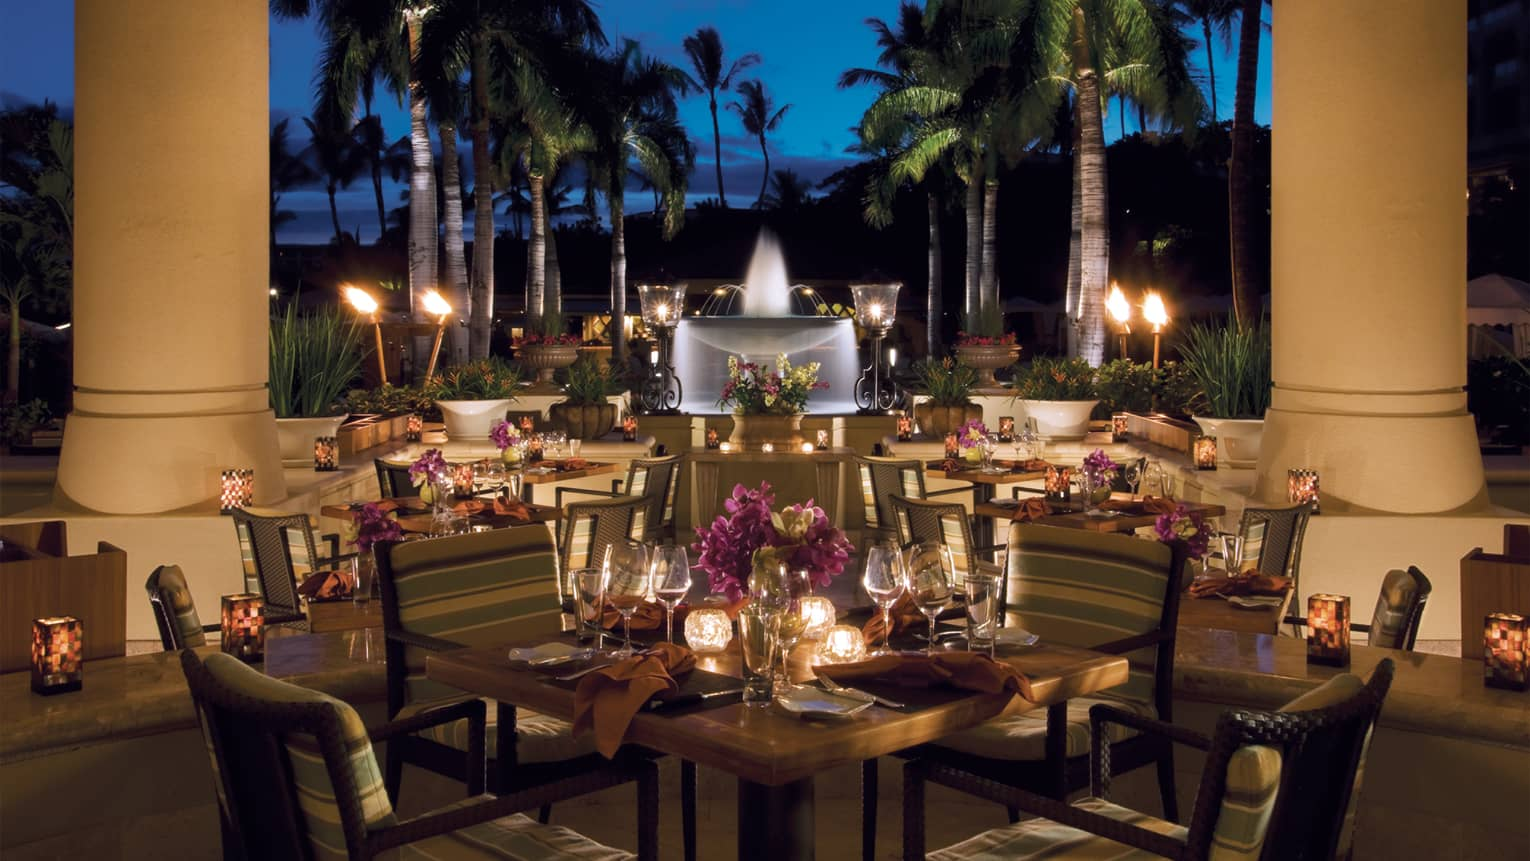 DUO Steak and Seafood outdoor dining tables at night with glowing candles by white pillars, white fountain